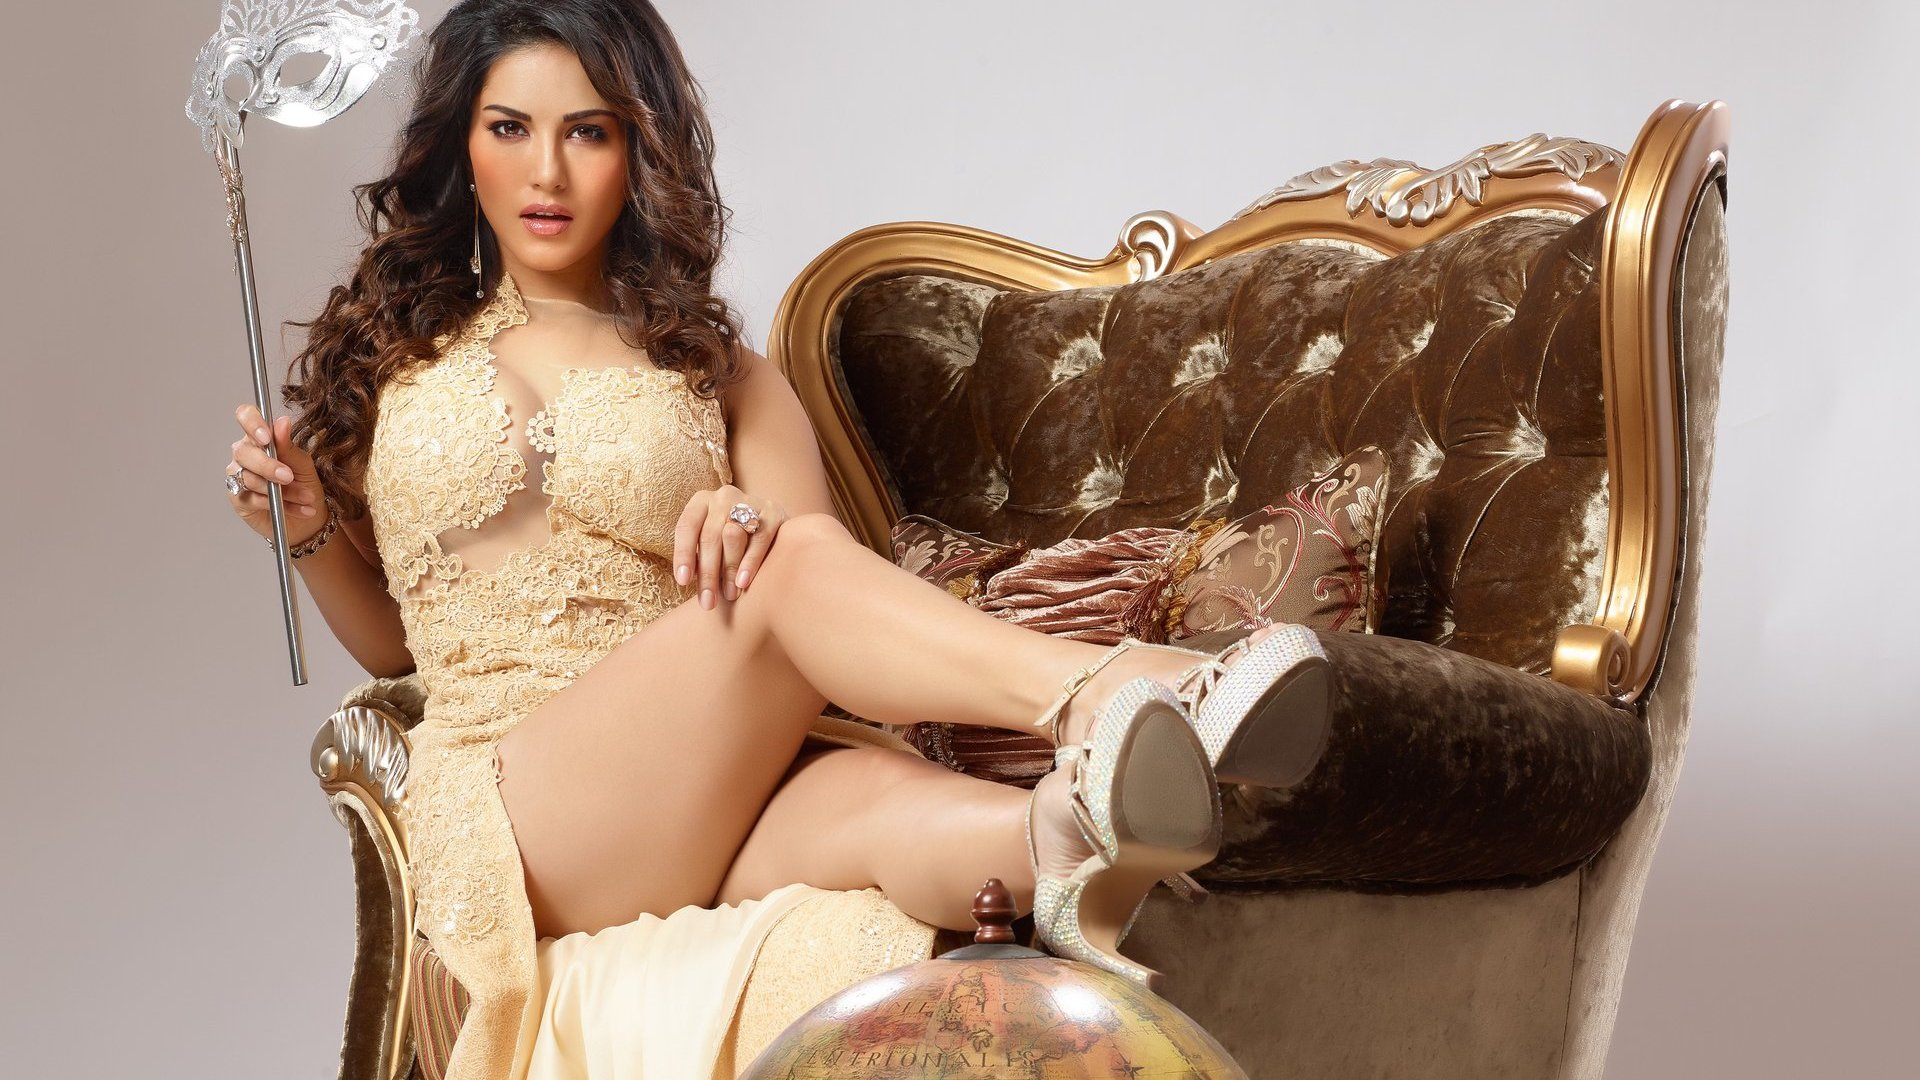 i take everything as it comes: sunny leone – asian news